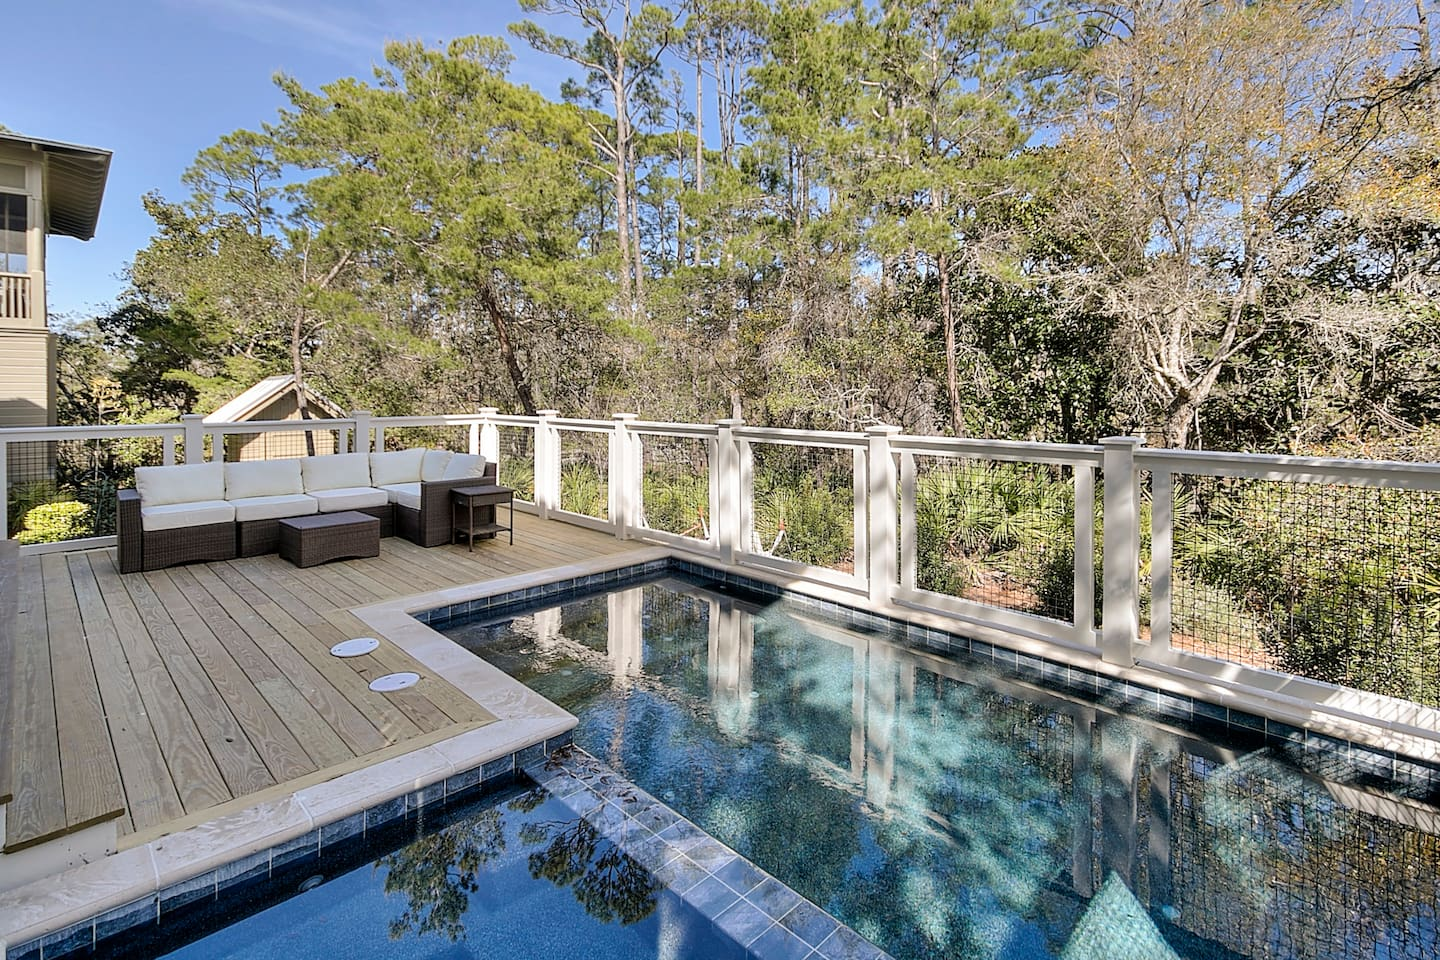 Private pool and spa - new for 2018!